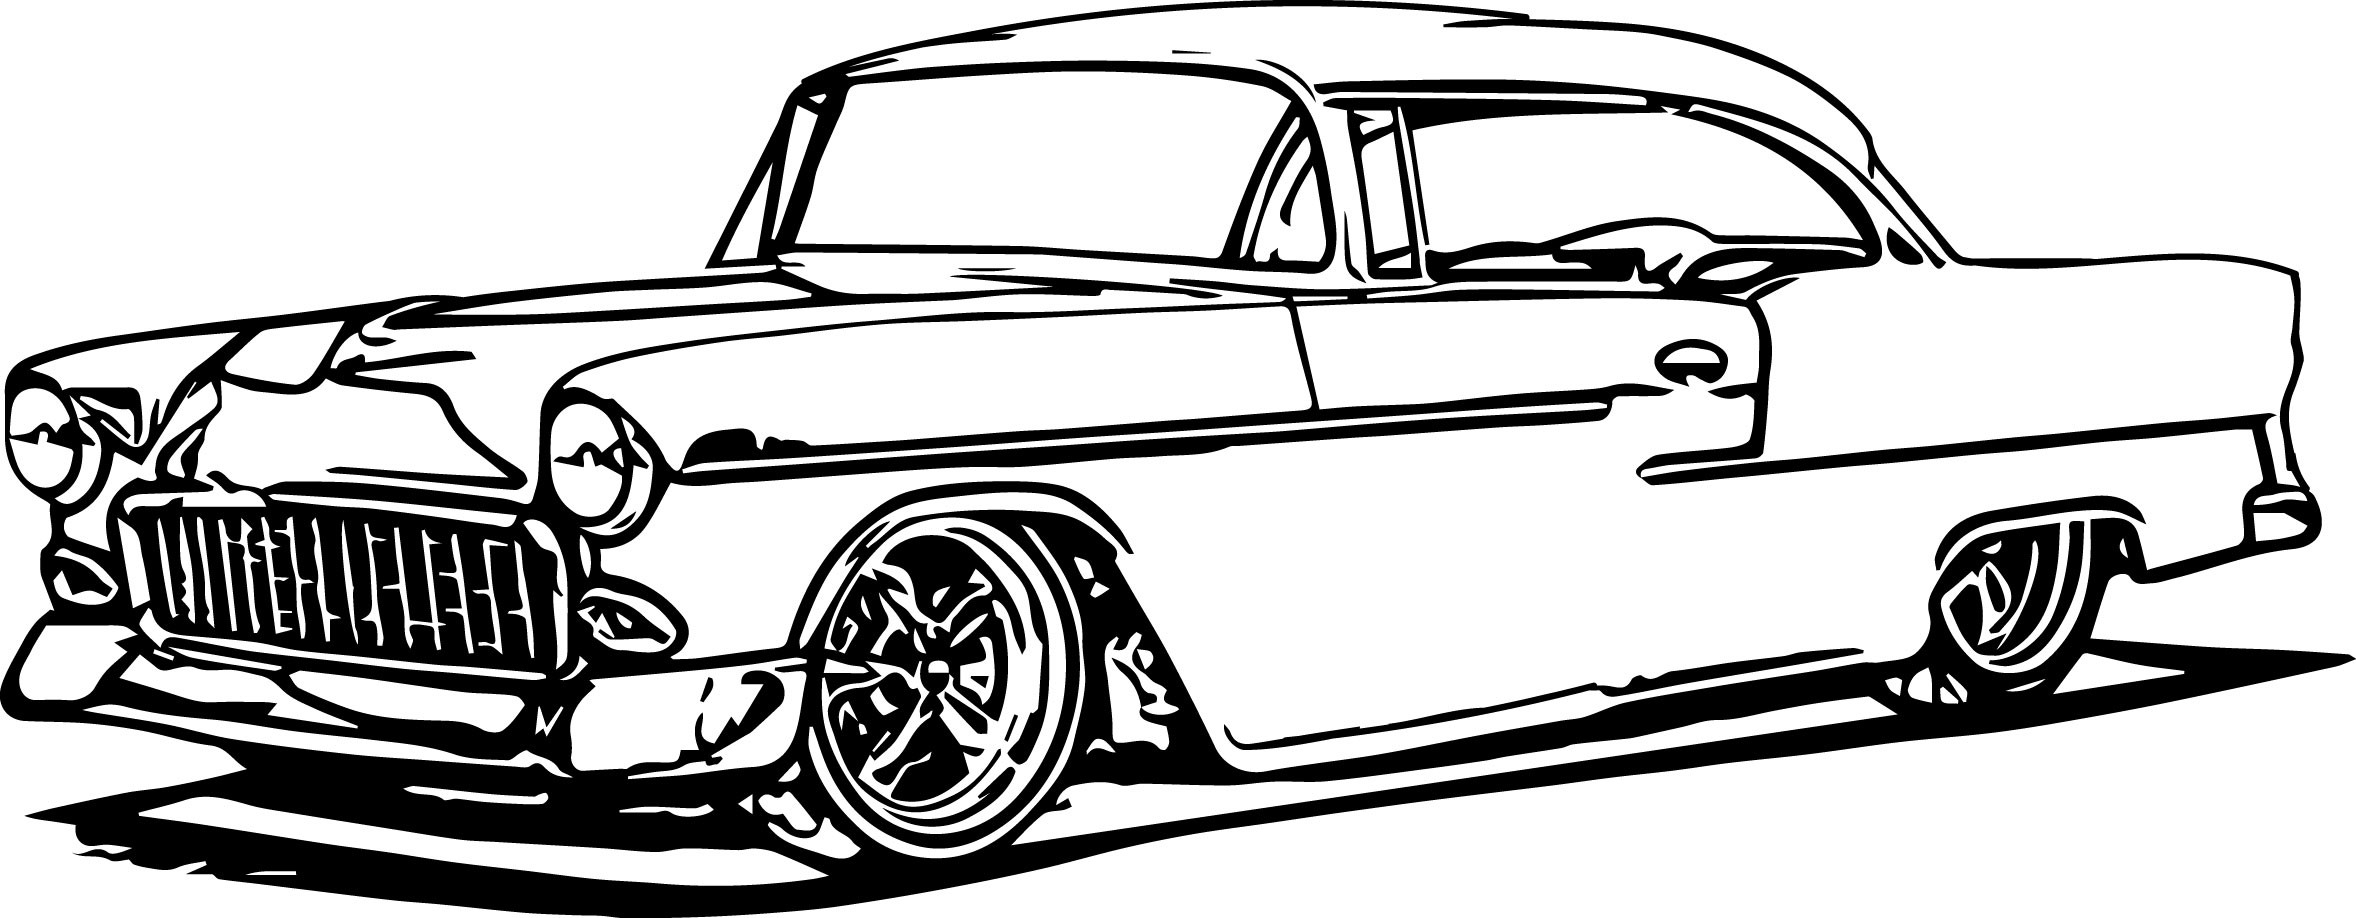 Adult Coloring Pages Chevrolet Hot Rods to Print 19 Q Muscle Car Printable Of Coloring Books and Pages Simple Hot Rod Coloring Pages Pinterest Printable